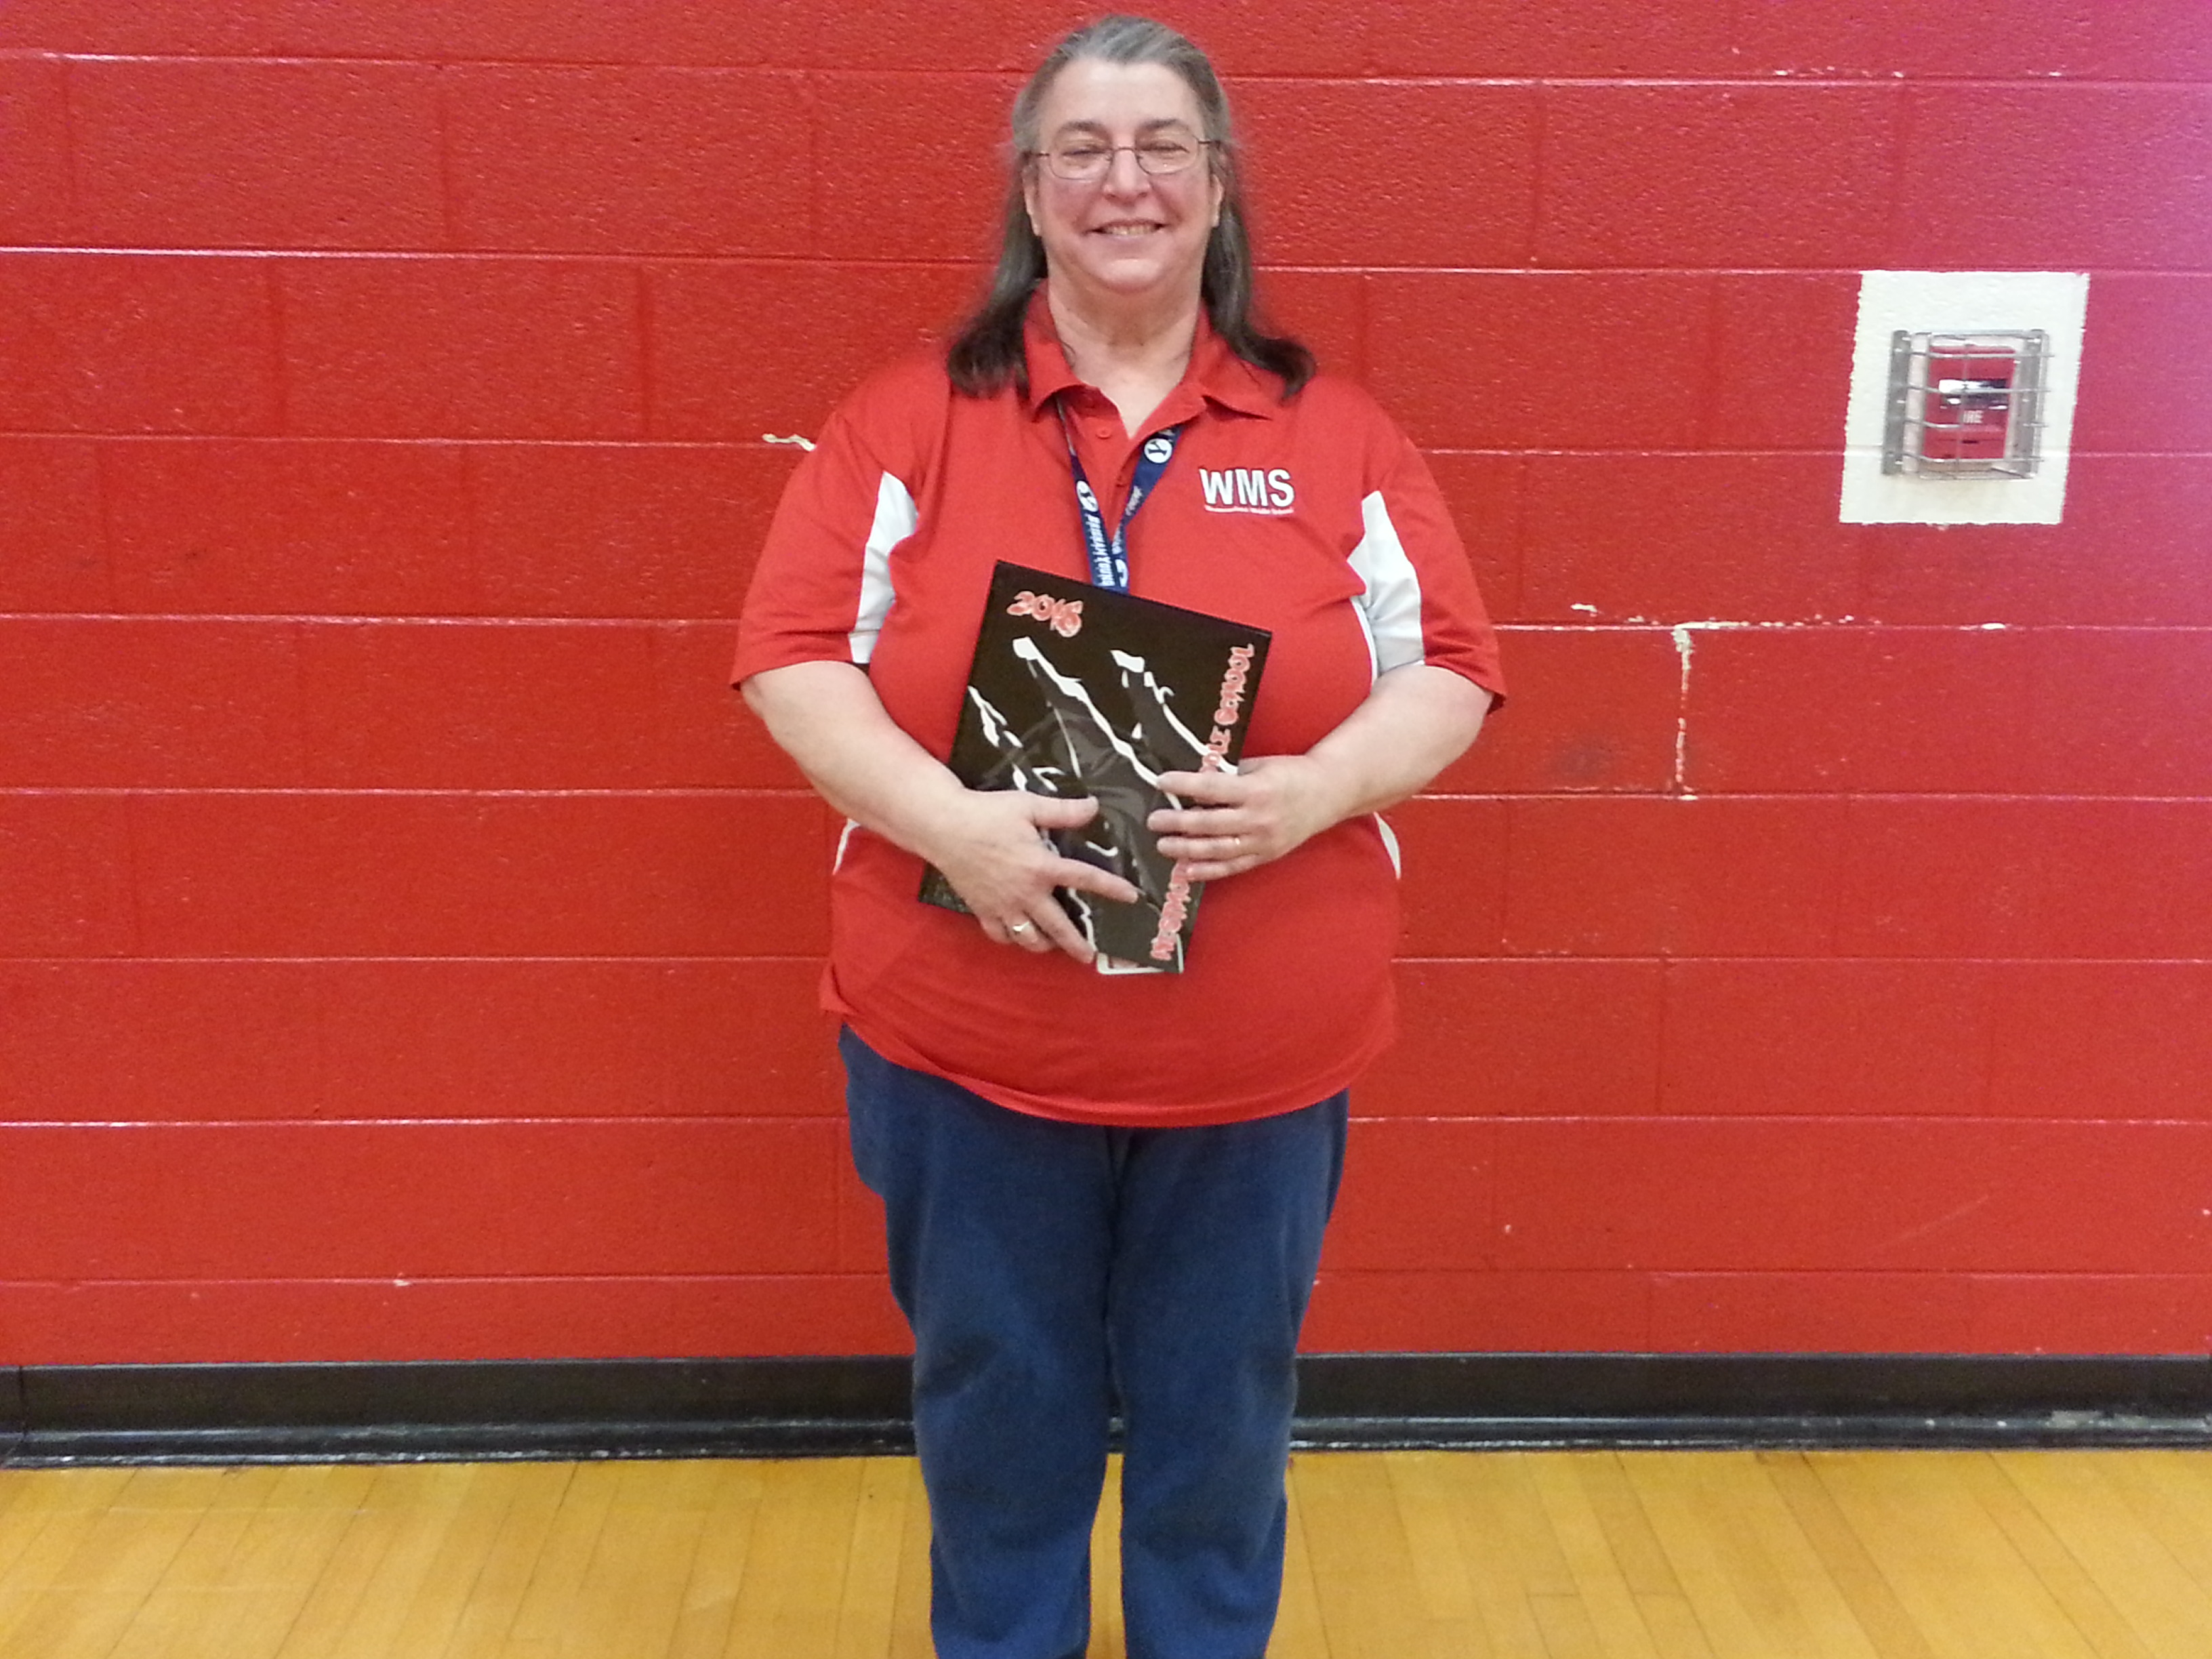 This Year The WMS Yearbook ... was dedicated to Mrs. Beth Hickey, WMS Choir and Music Teacher.  (05/09)